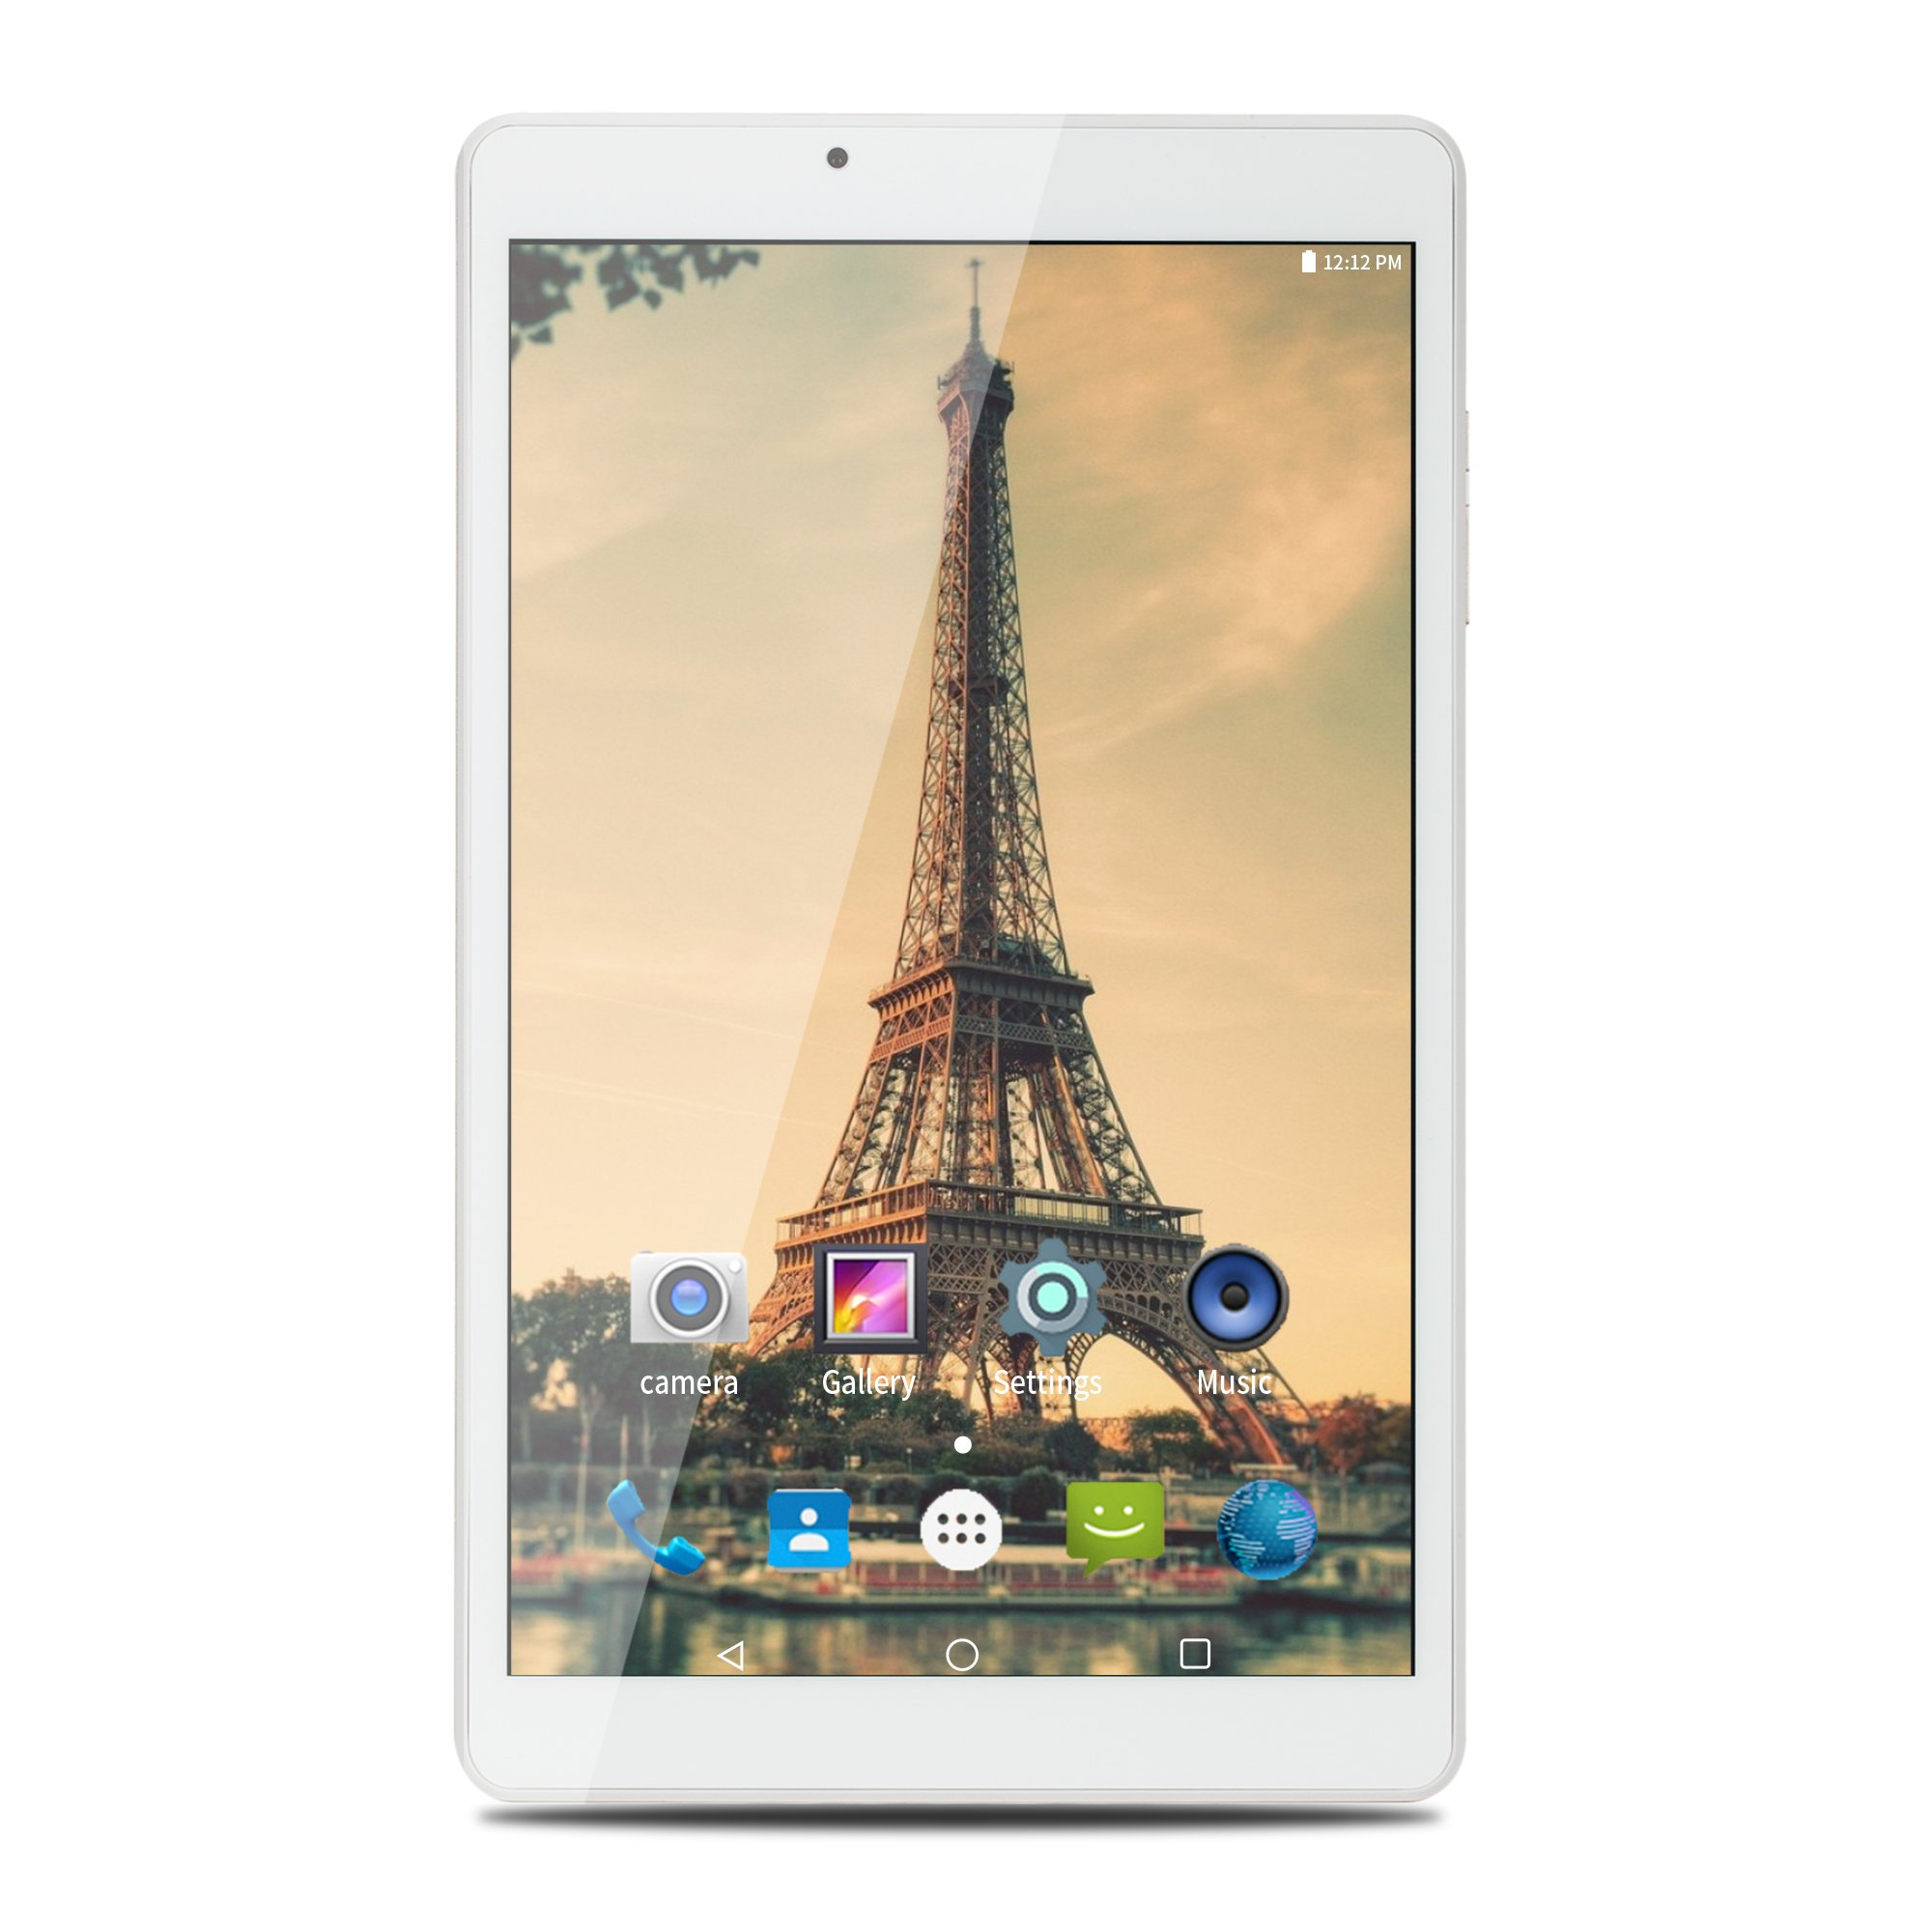 AOSON R103 10 Inch Tablet, Android 7.0 Nougat MTK Quad-core Processor, IPS 1280x800 Touch Screen, 2GB RAM 32GB Storage, 6000mAh, with Dual Camera Bluetooth 4.0 Wi-Fi GPS, GMS Certified, Golden rear